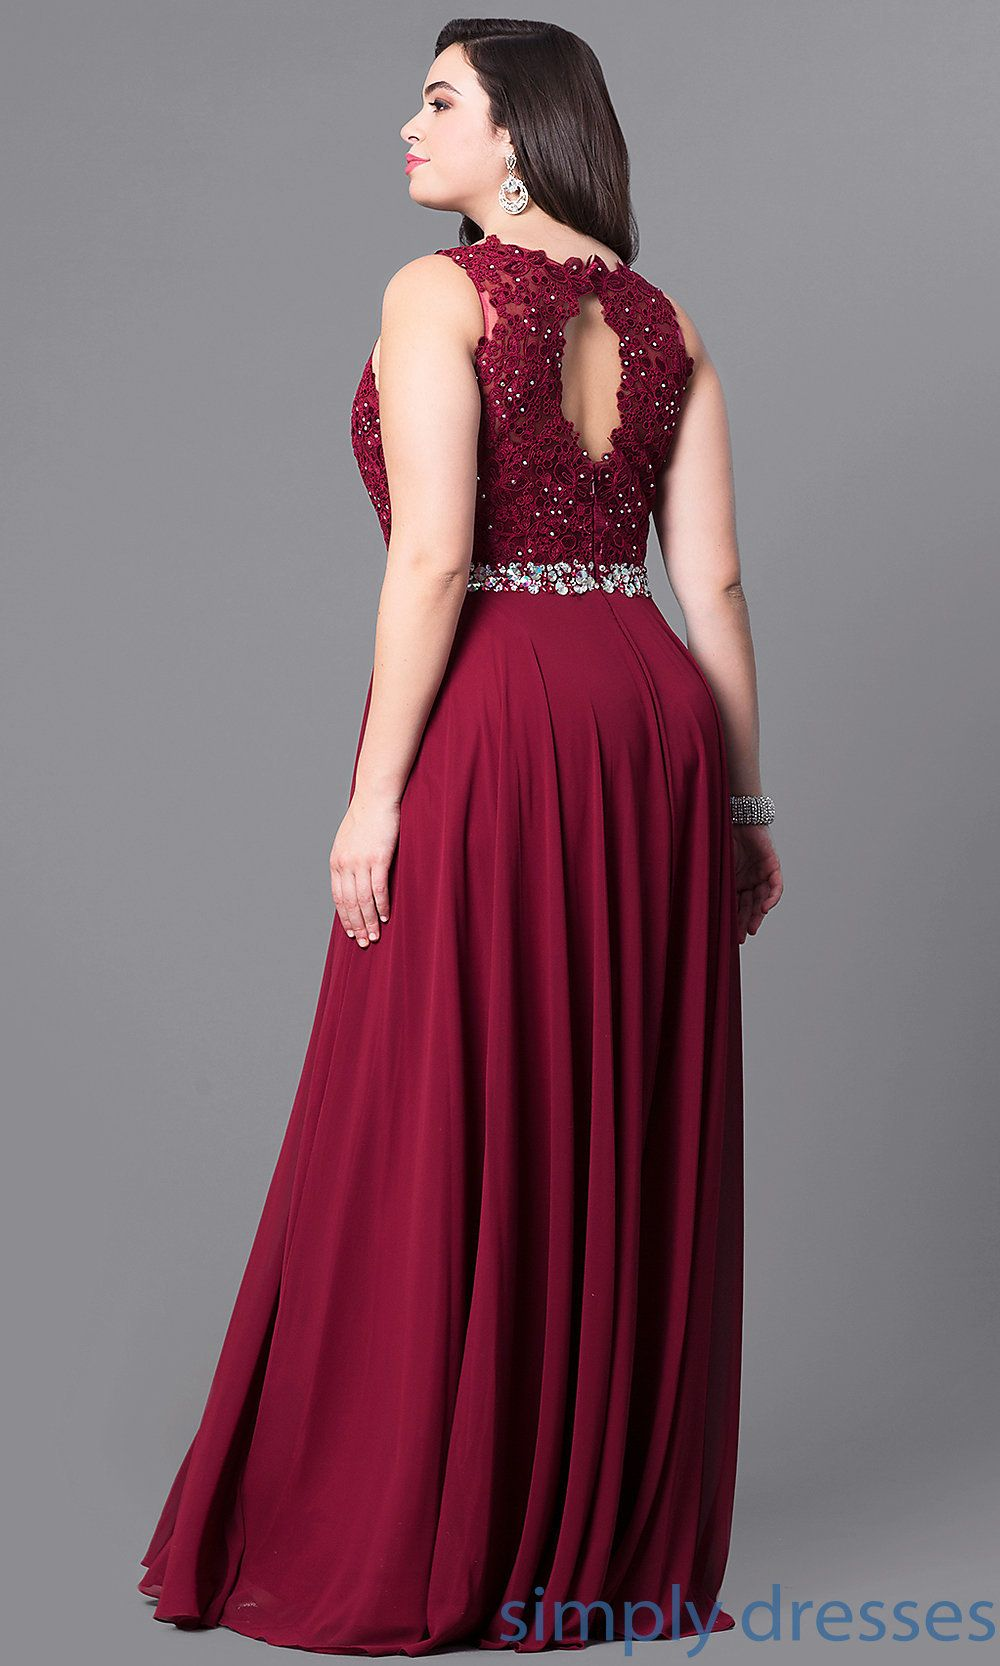 9ba6cce867 Shop plus-size long prom dresses at Simply Dresses. Formal evening dresses  under $200 with sleeveless illusion-lace bodices and jeweled waists.